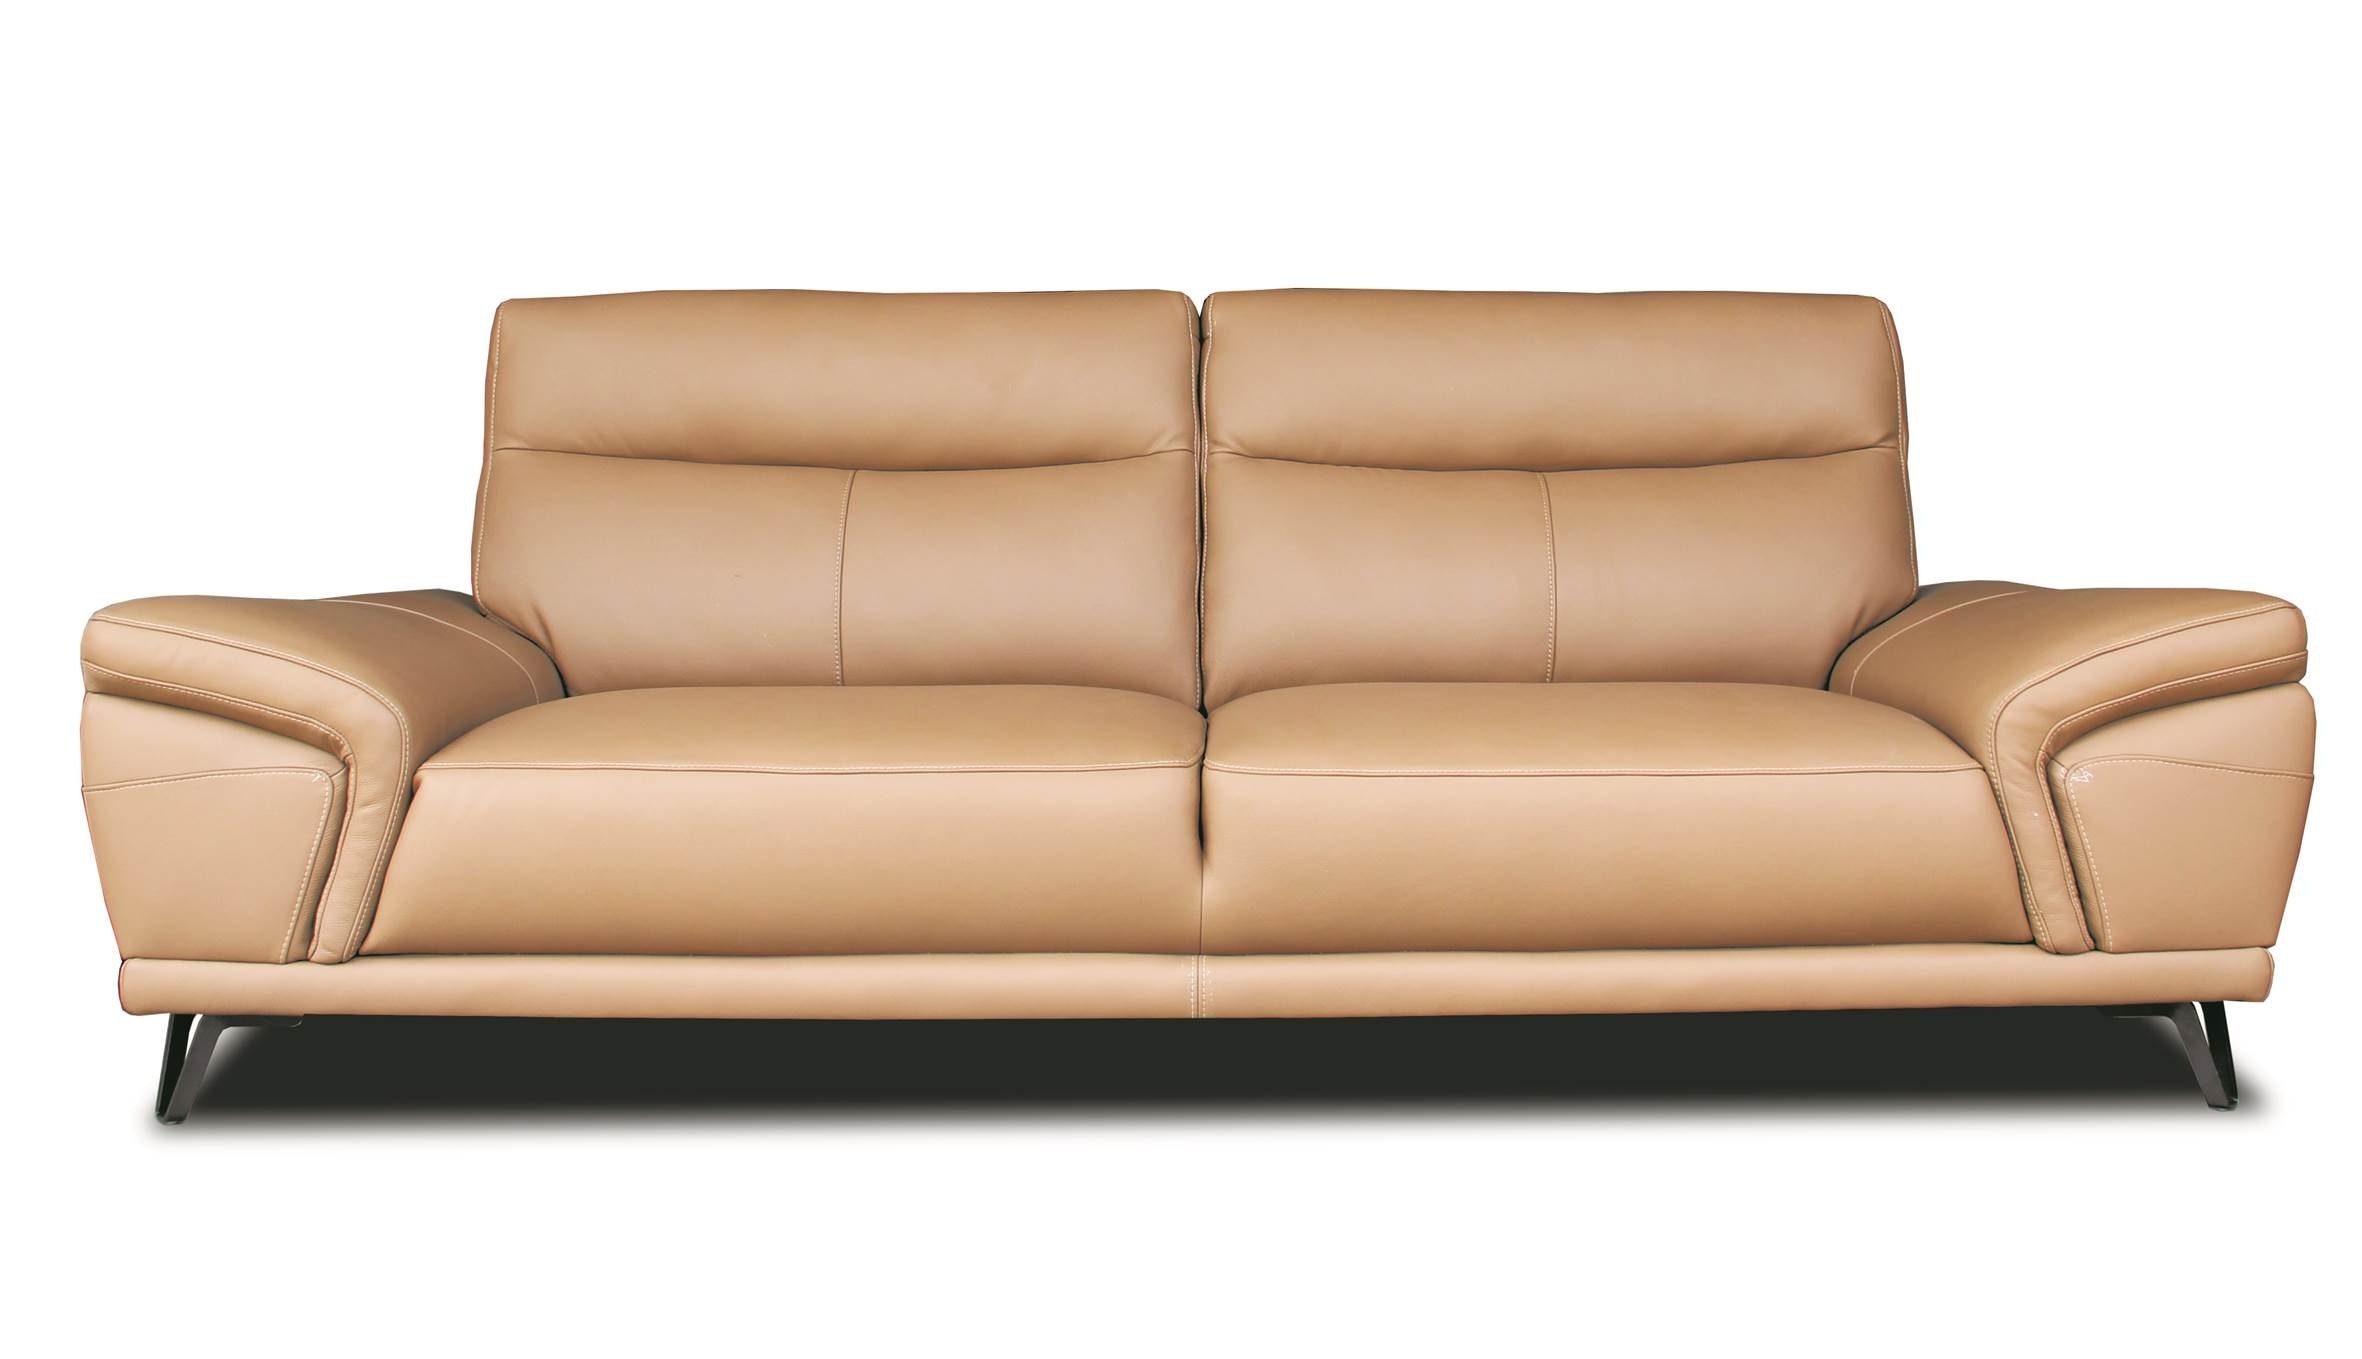 3 Seater Leather Sofa Singapore - Maelove.store • Maelove.store